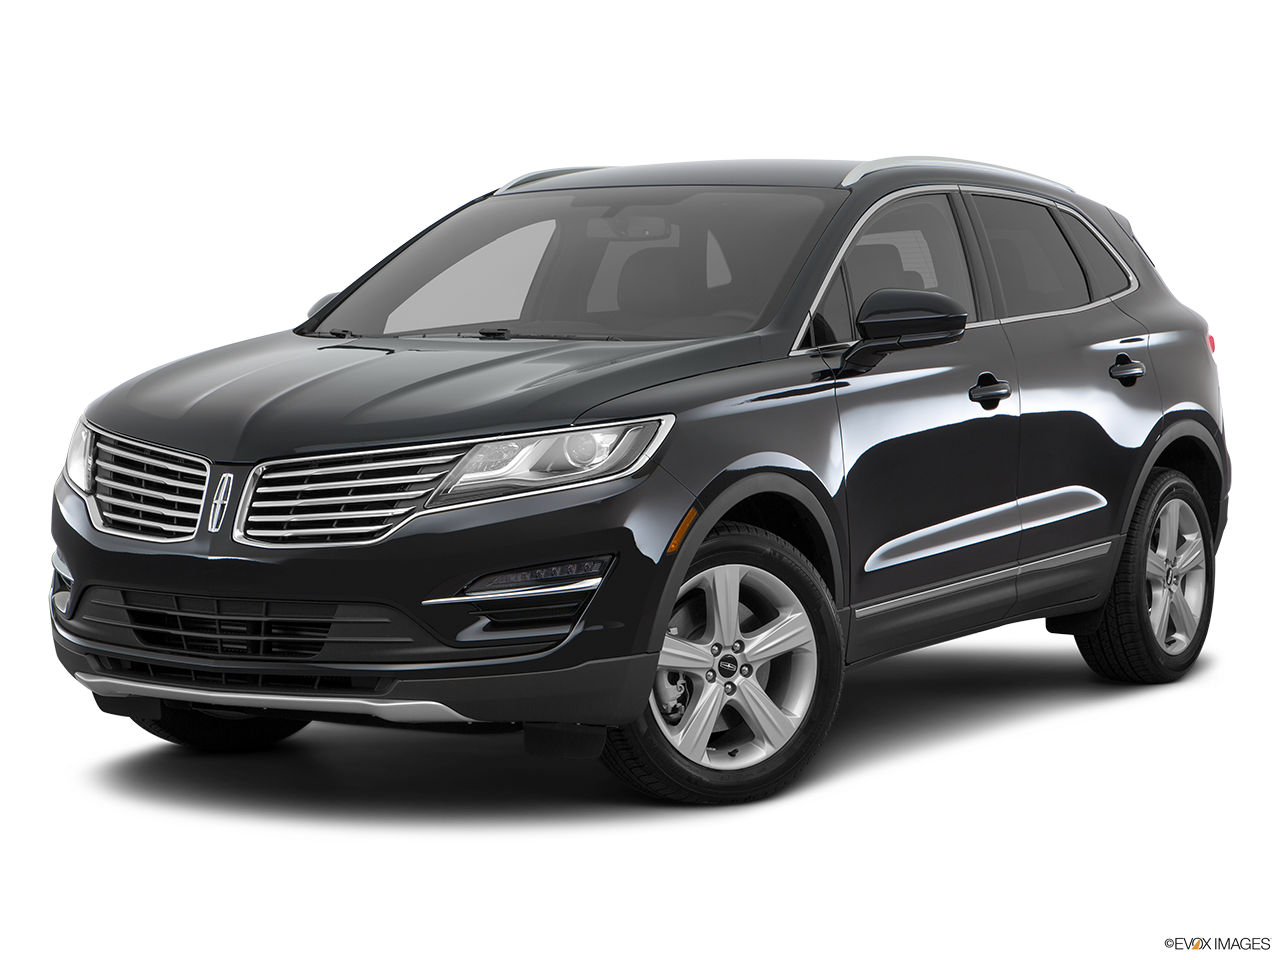 Test Drive A 2017 Lincoln MKC at Sunnyvale Lincoln in Sunnyvale